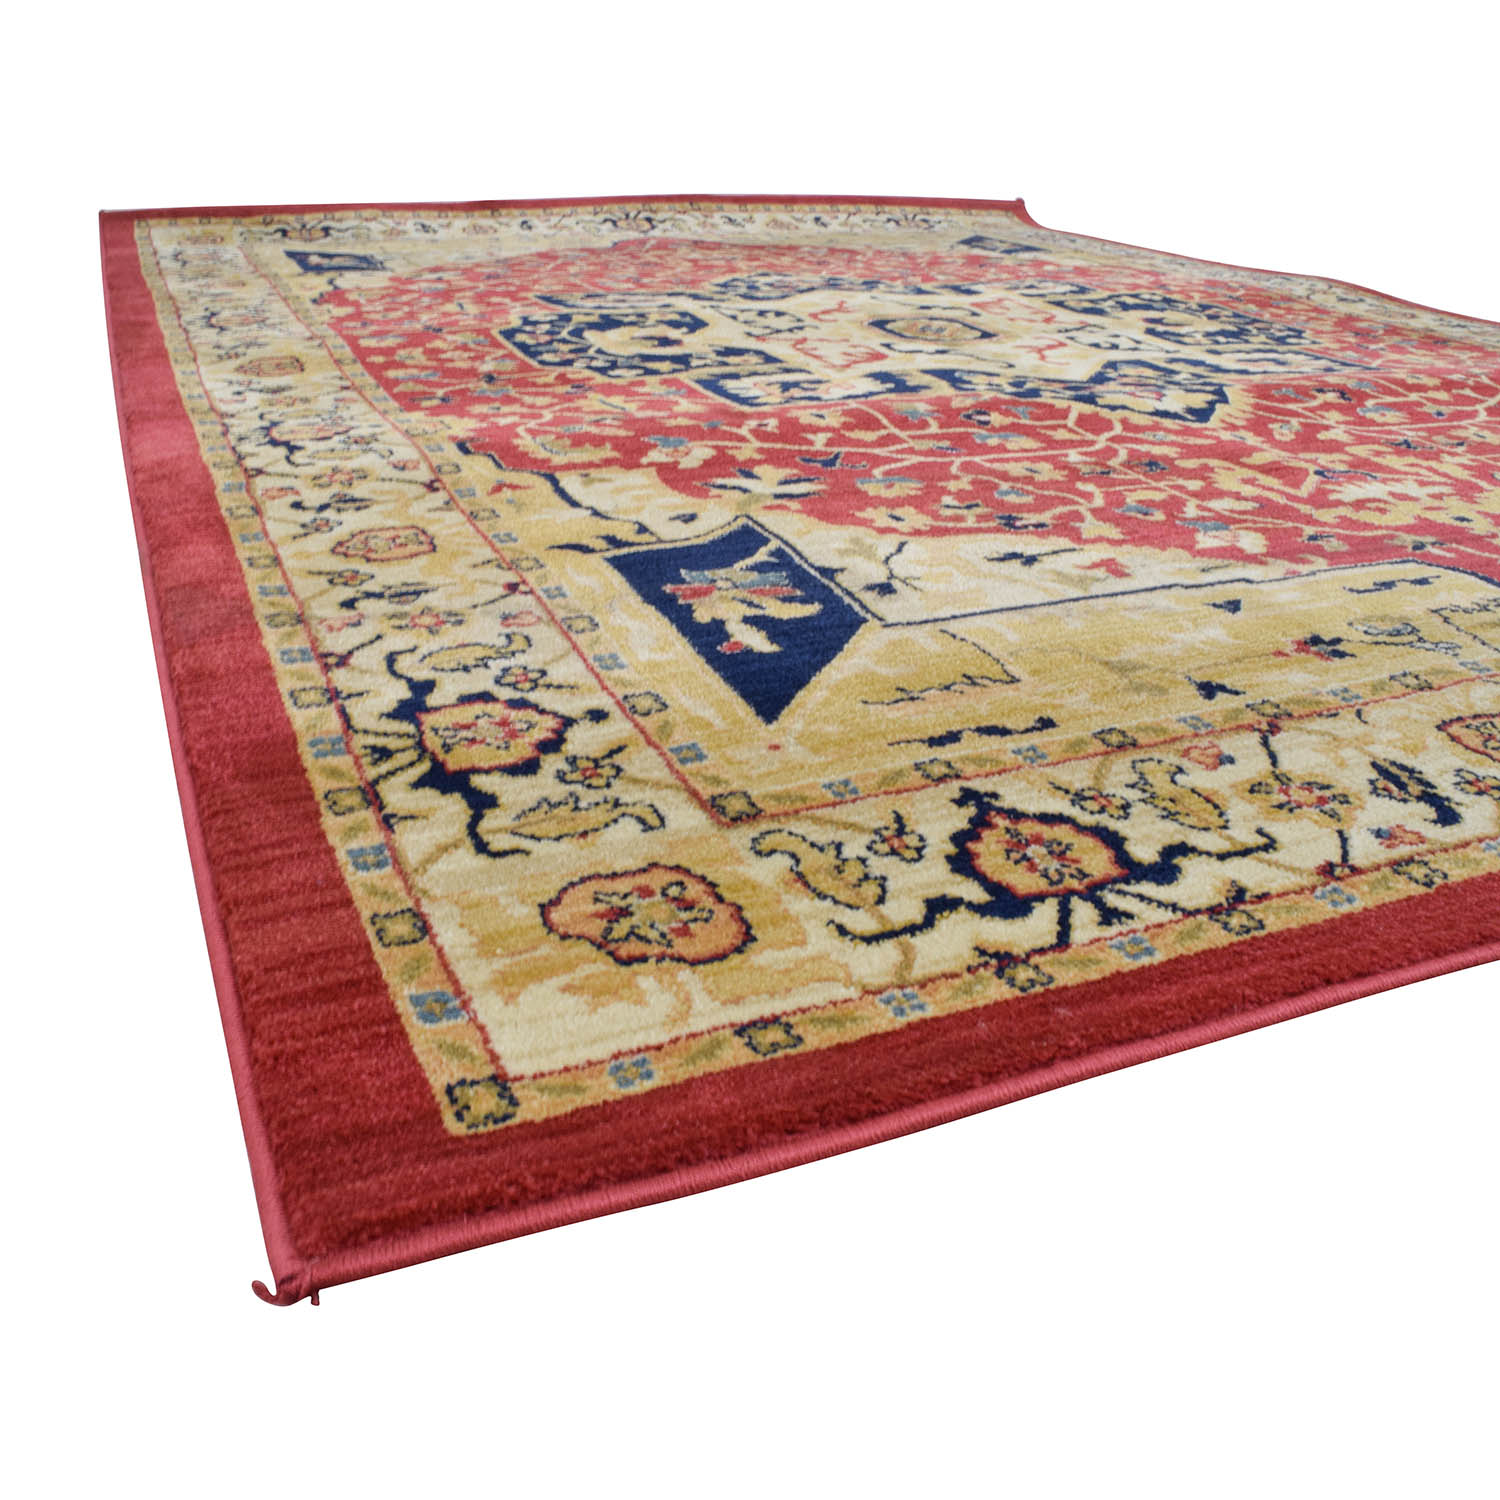 Safavieh Safavieh Austin Red, Beige and Blue Area Rug nyc